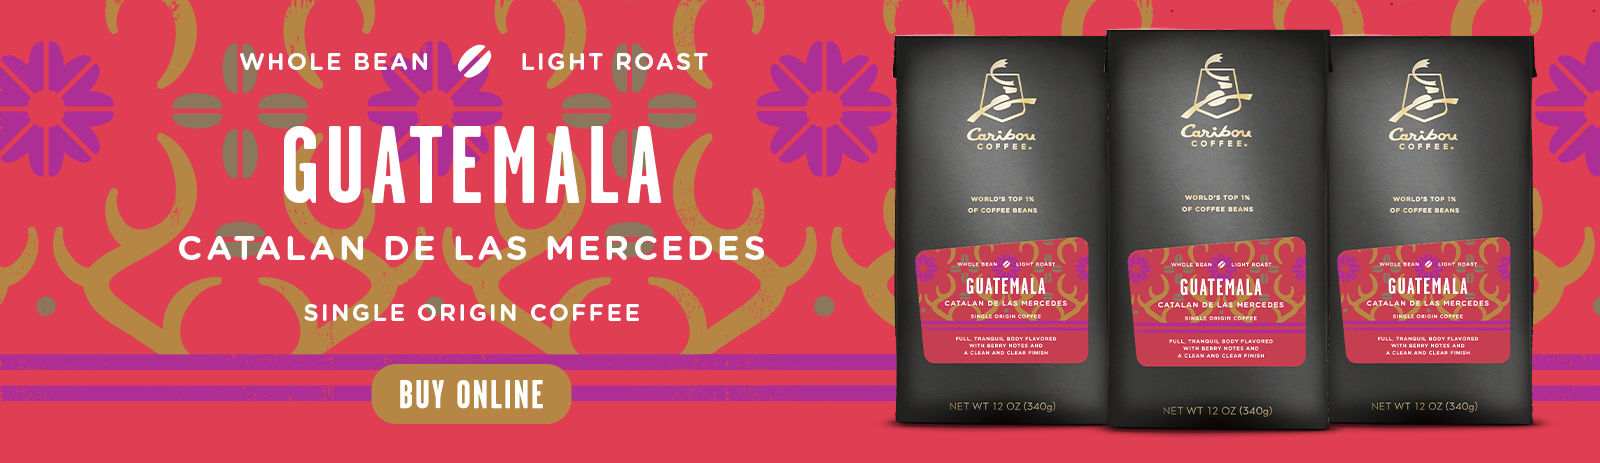 Guatemala Catalan de las Mercedes specialty Discovery coffee is all new and ready for discovery - click to shop